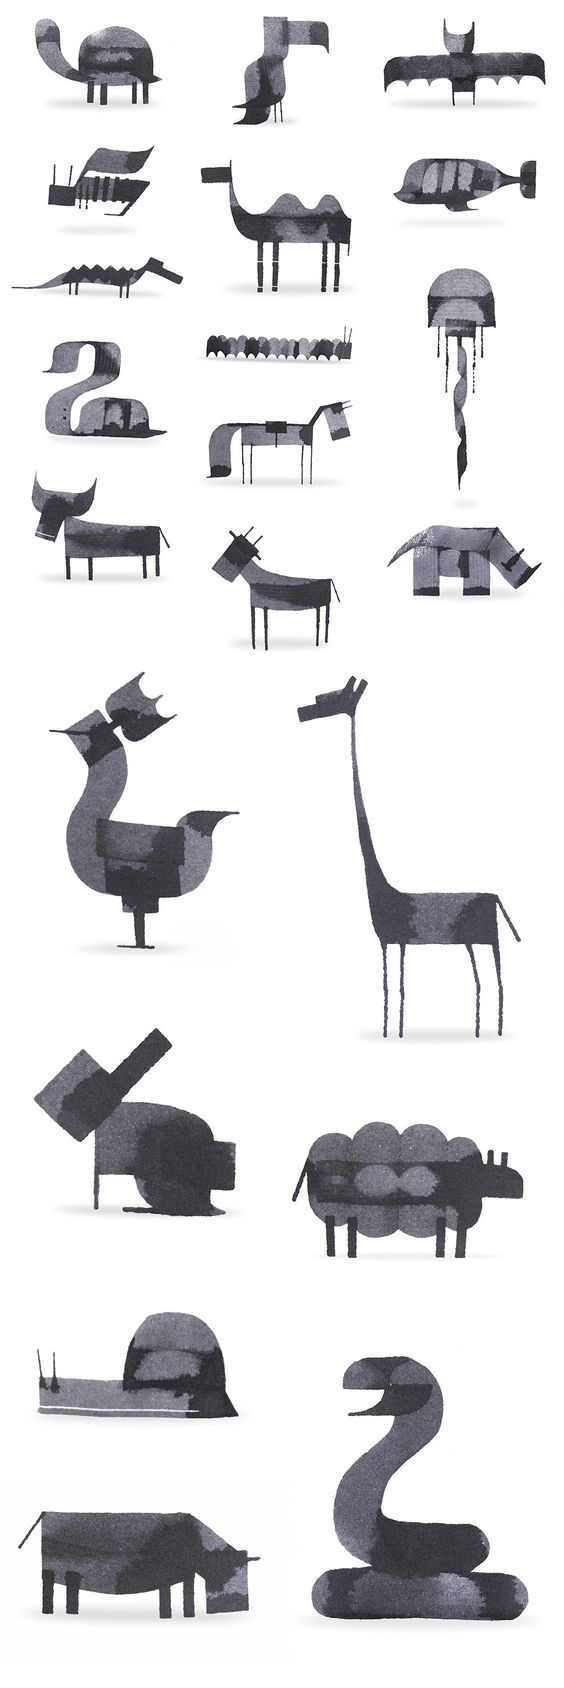 New Calligraphy Animals by Andrew Fox: